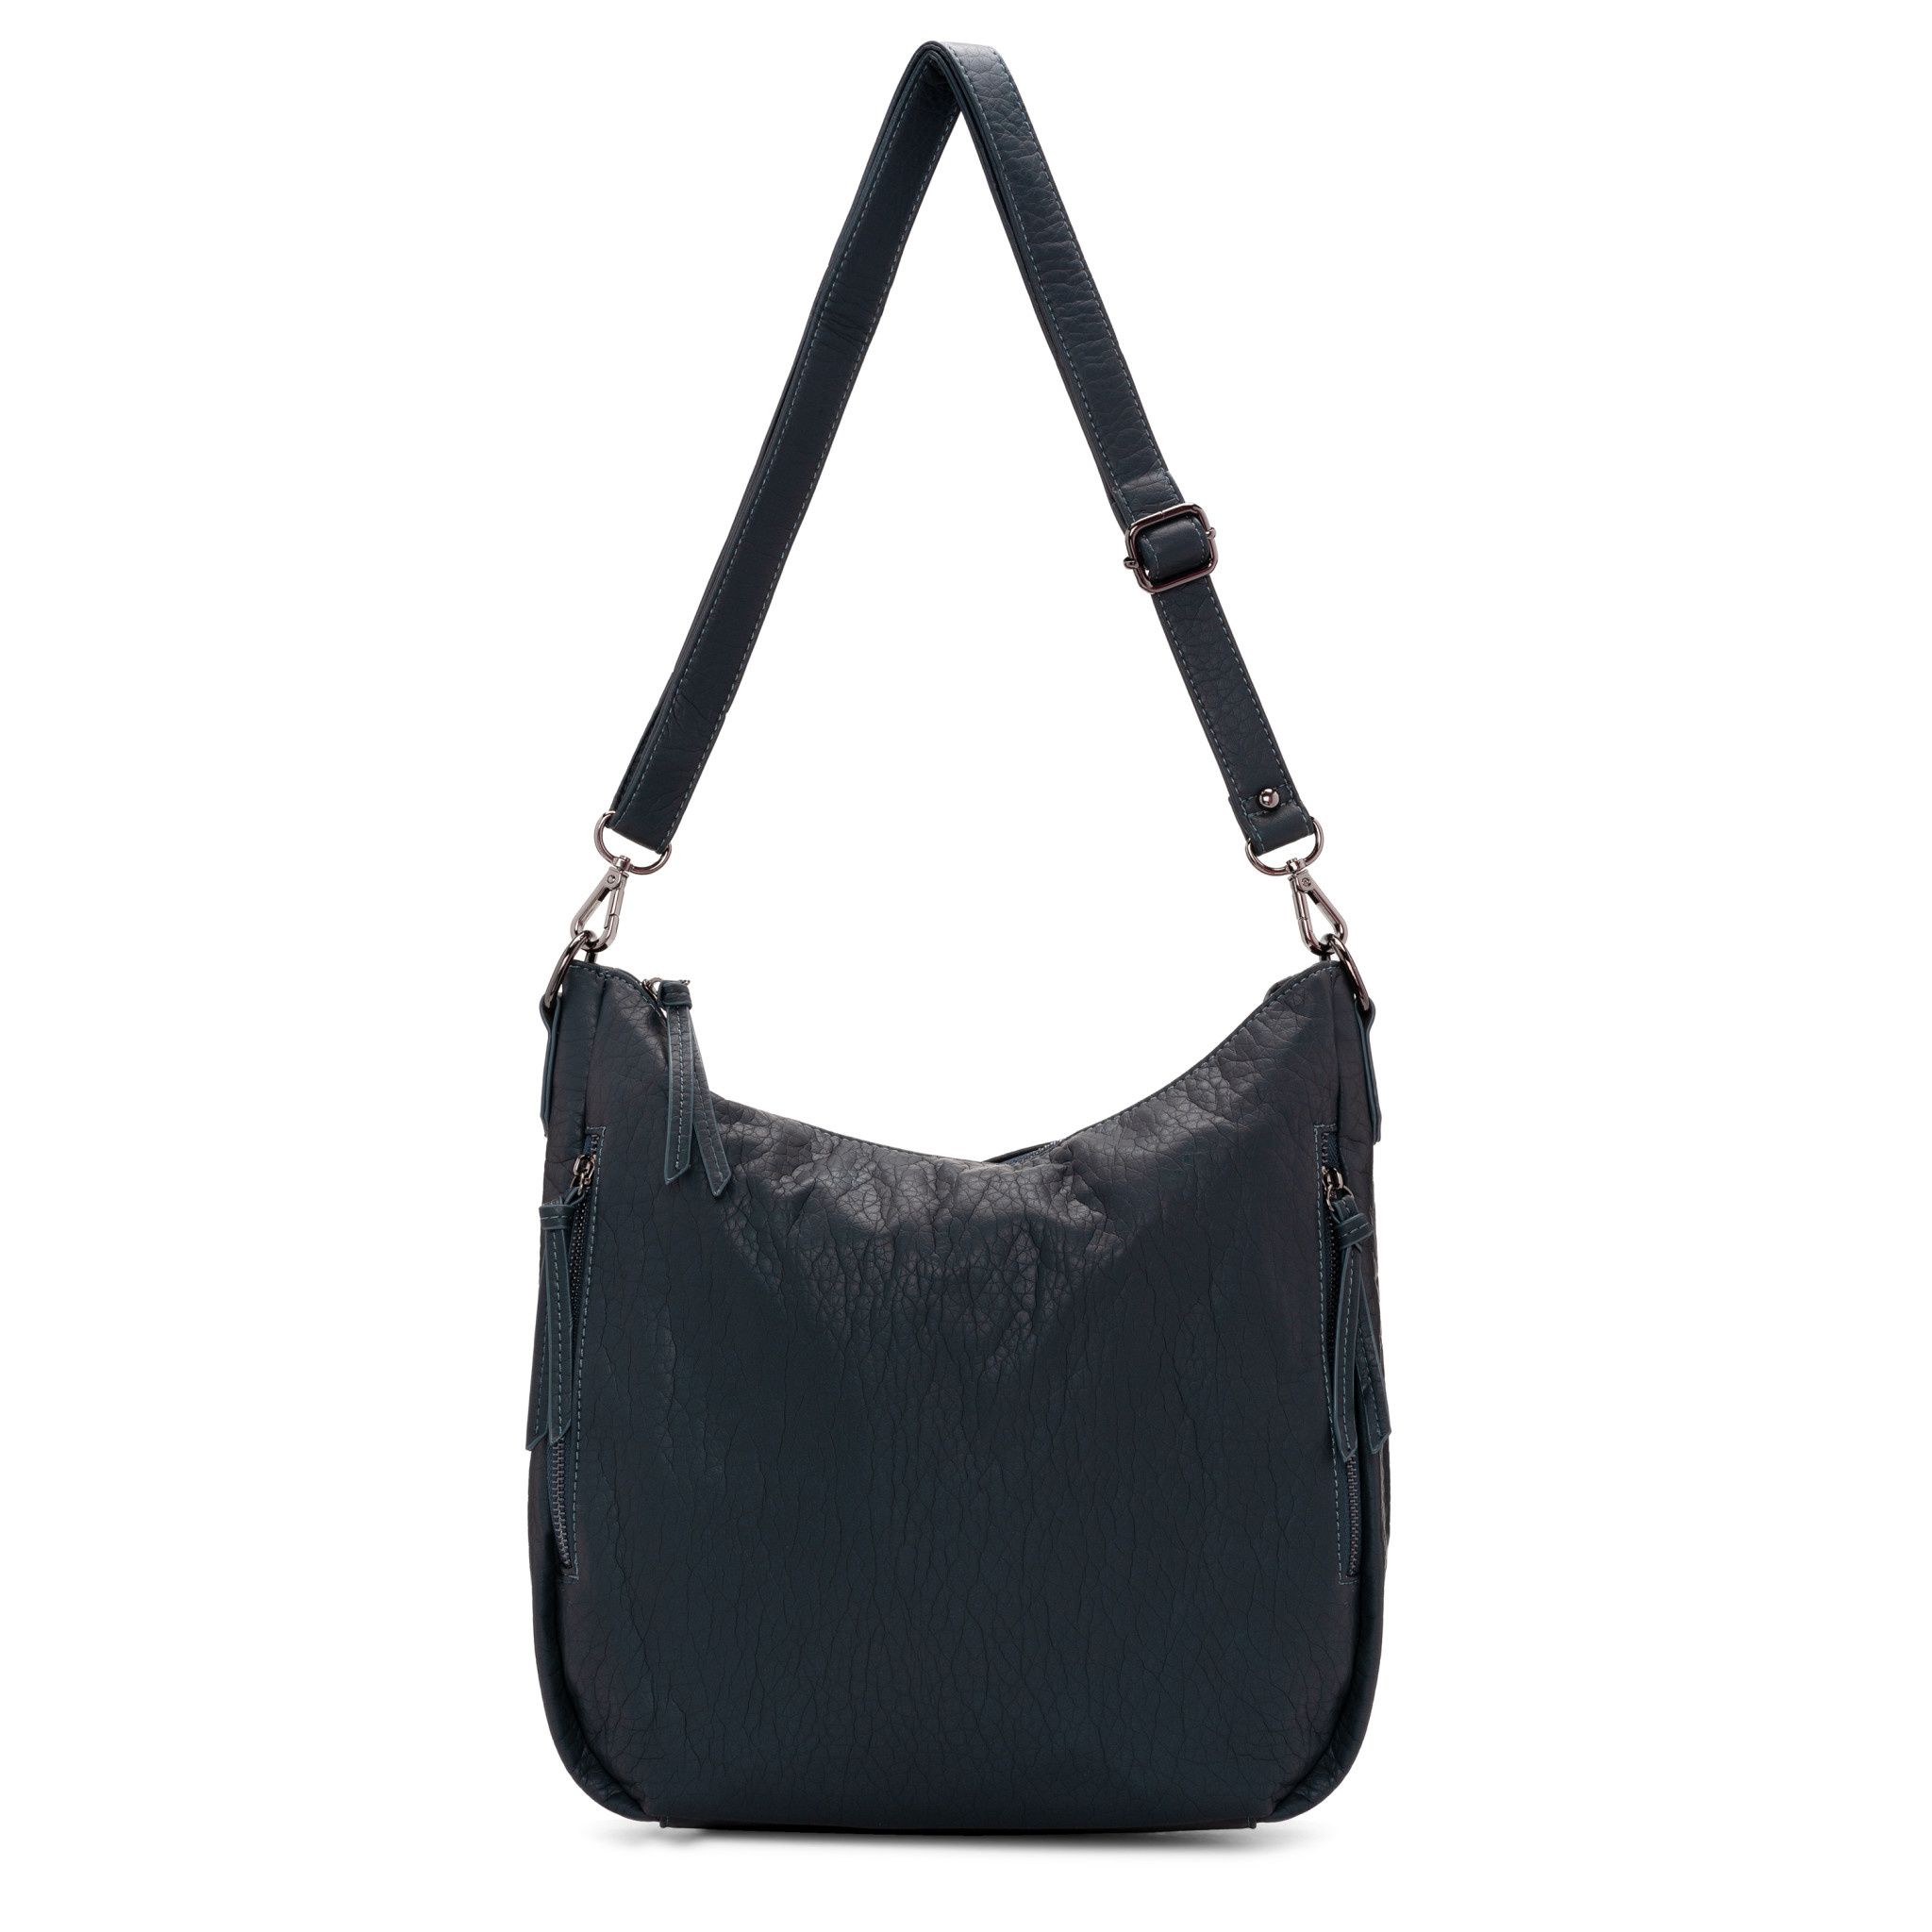 Colab Colab Megan Washed Vintage Shoulder Hobo (#6403) - Black